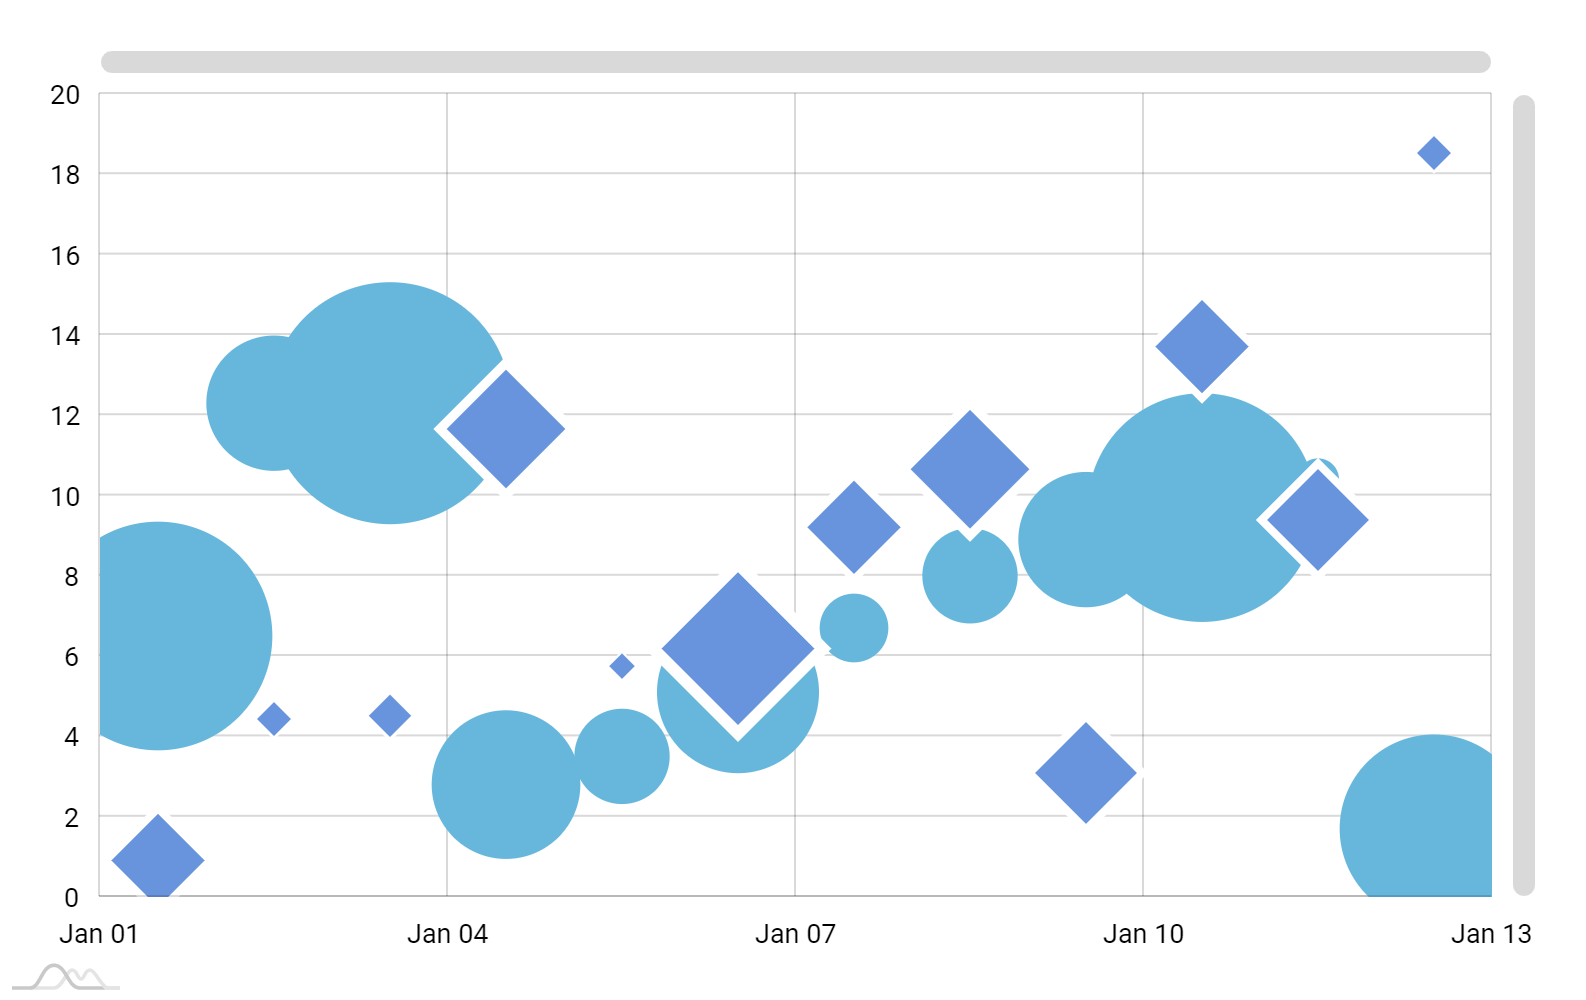 Xy Chart With Date Based Axis